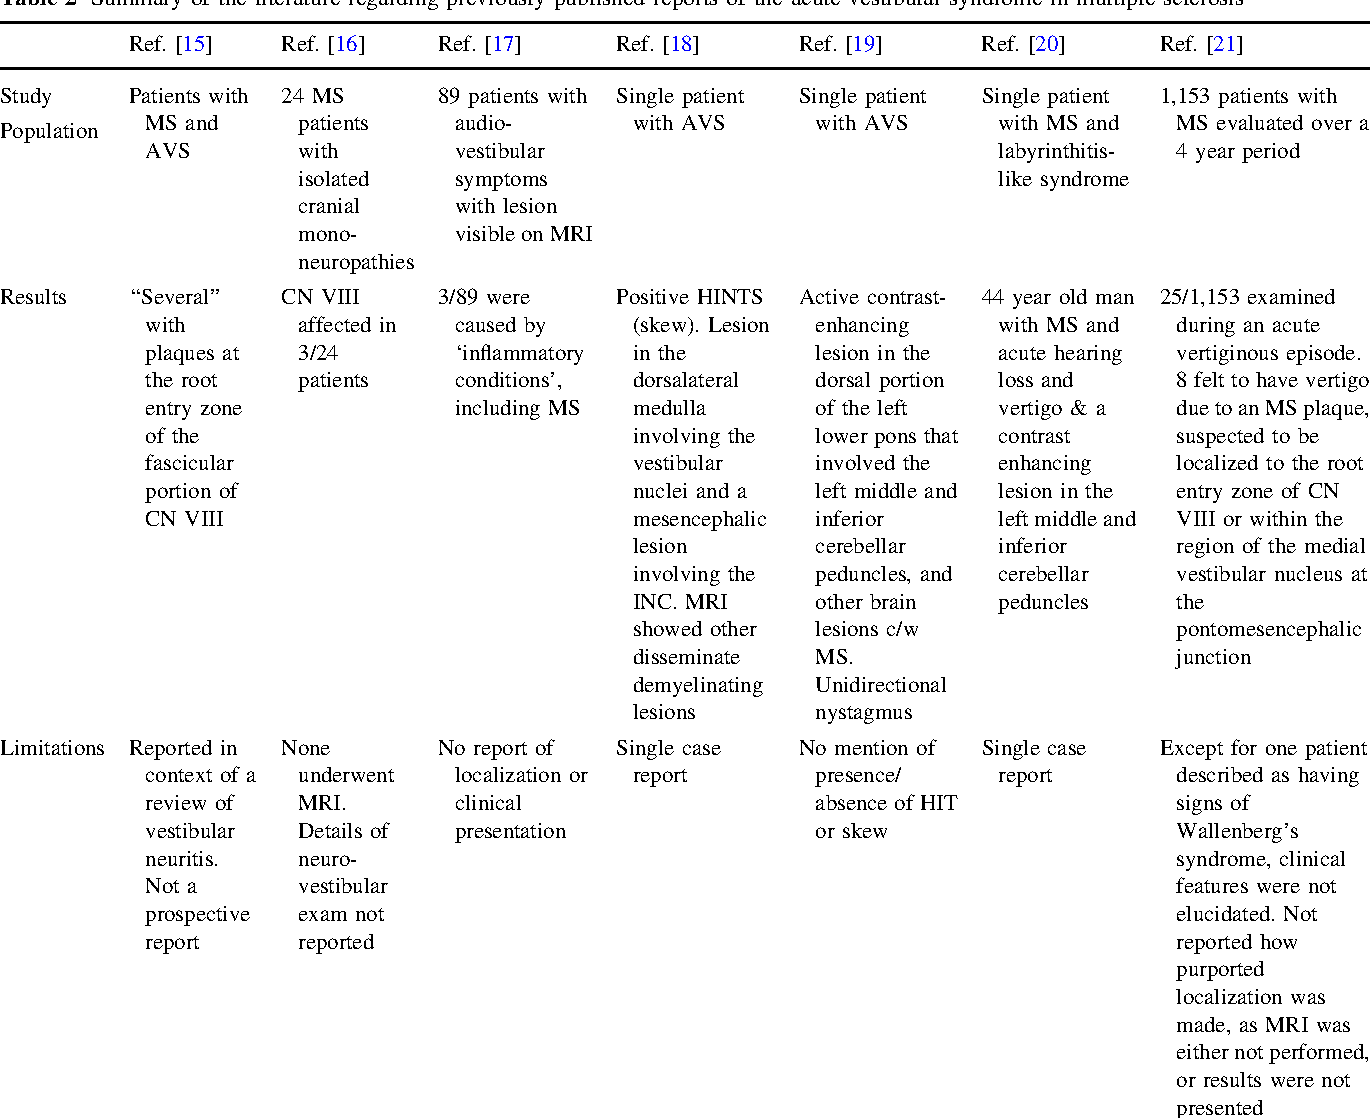 Multiple sclerosis as a cause of the acute vestibular